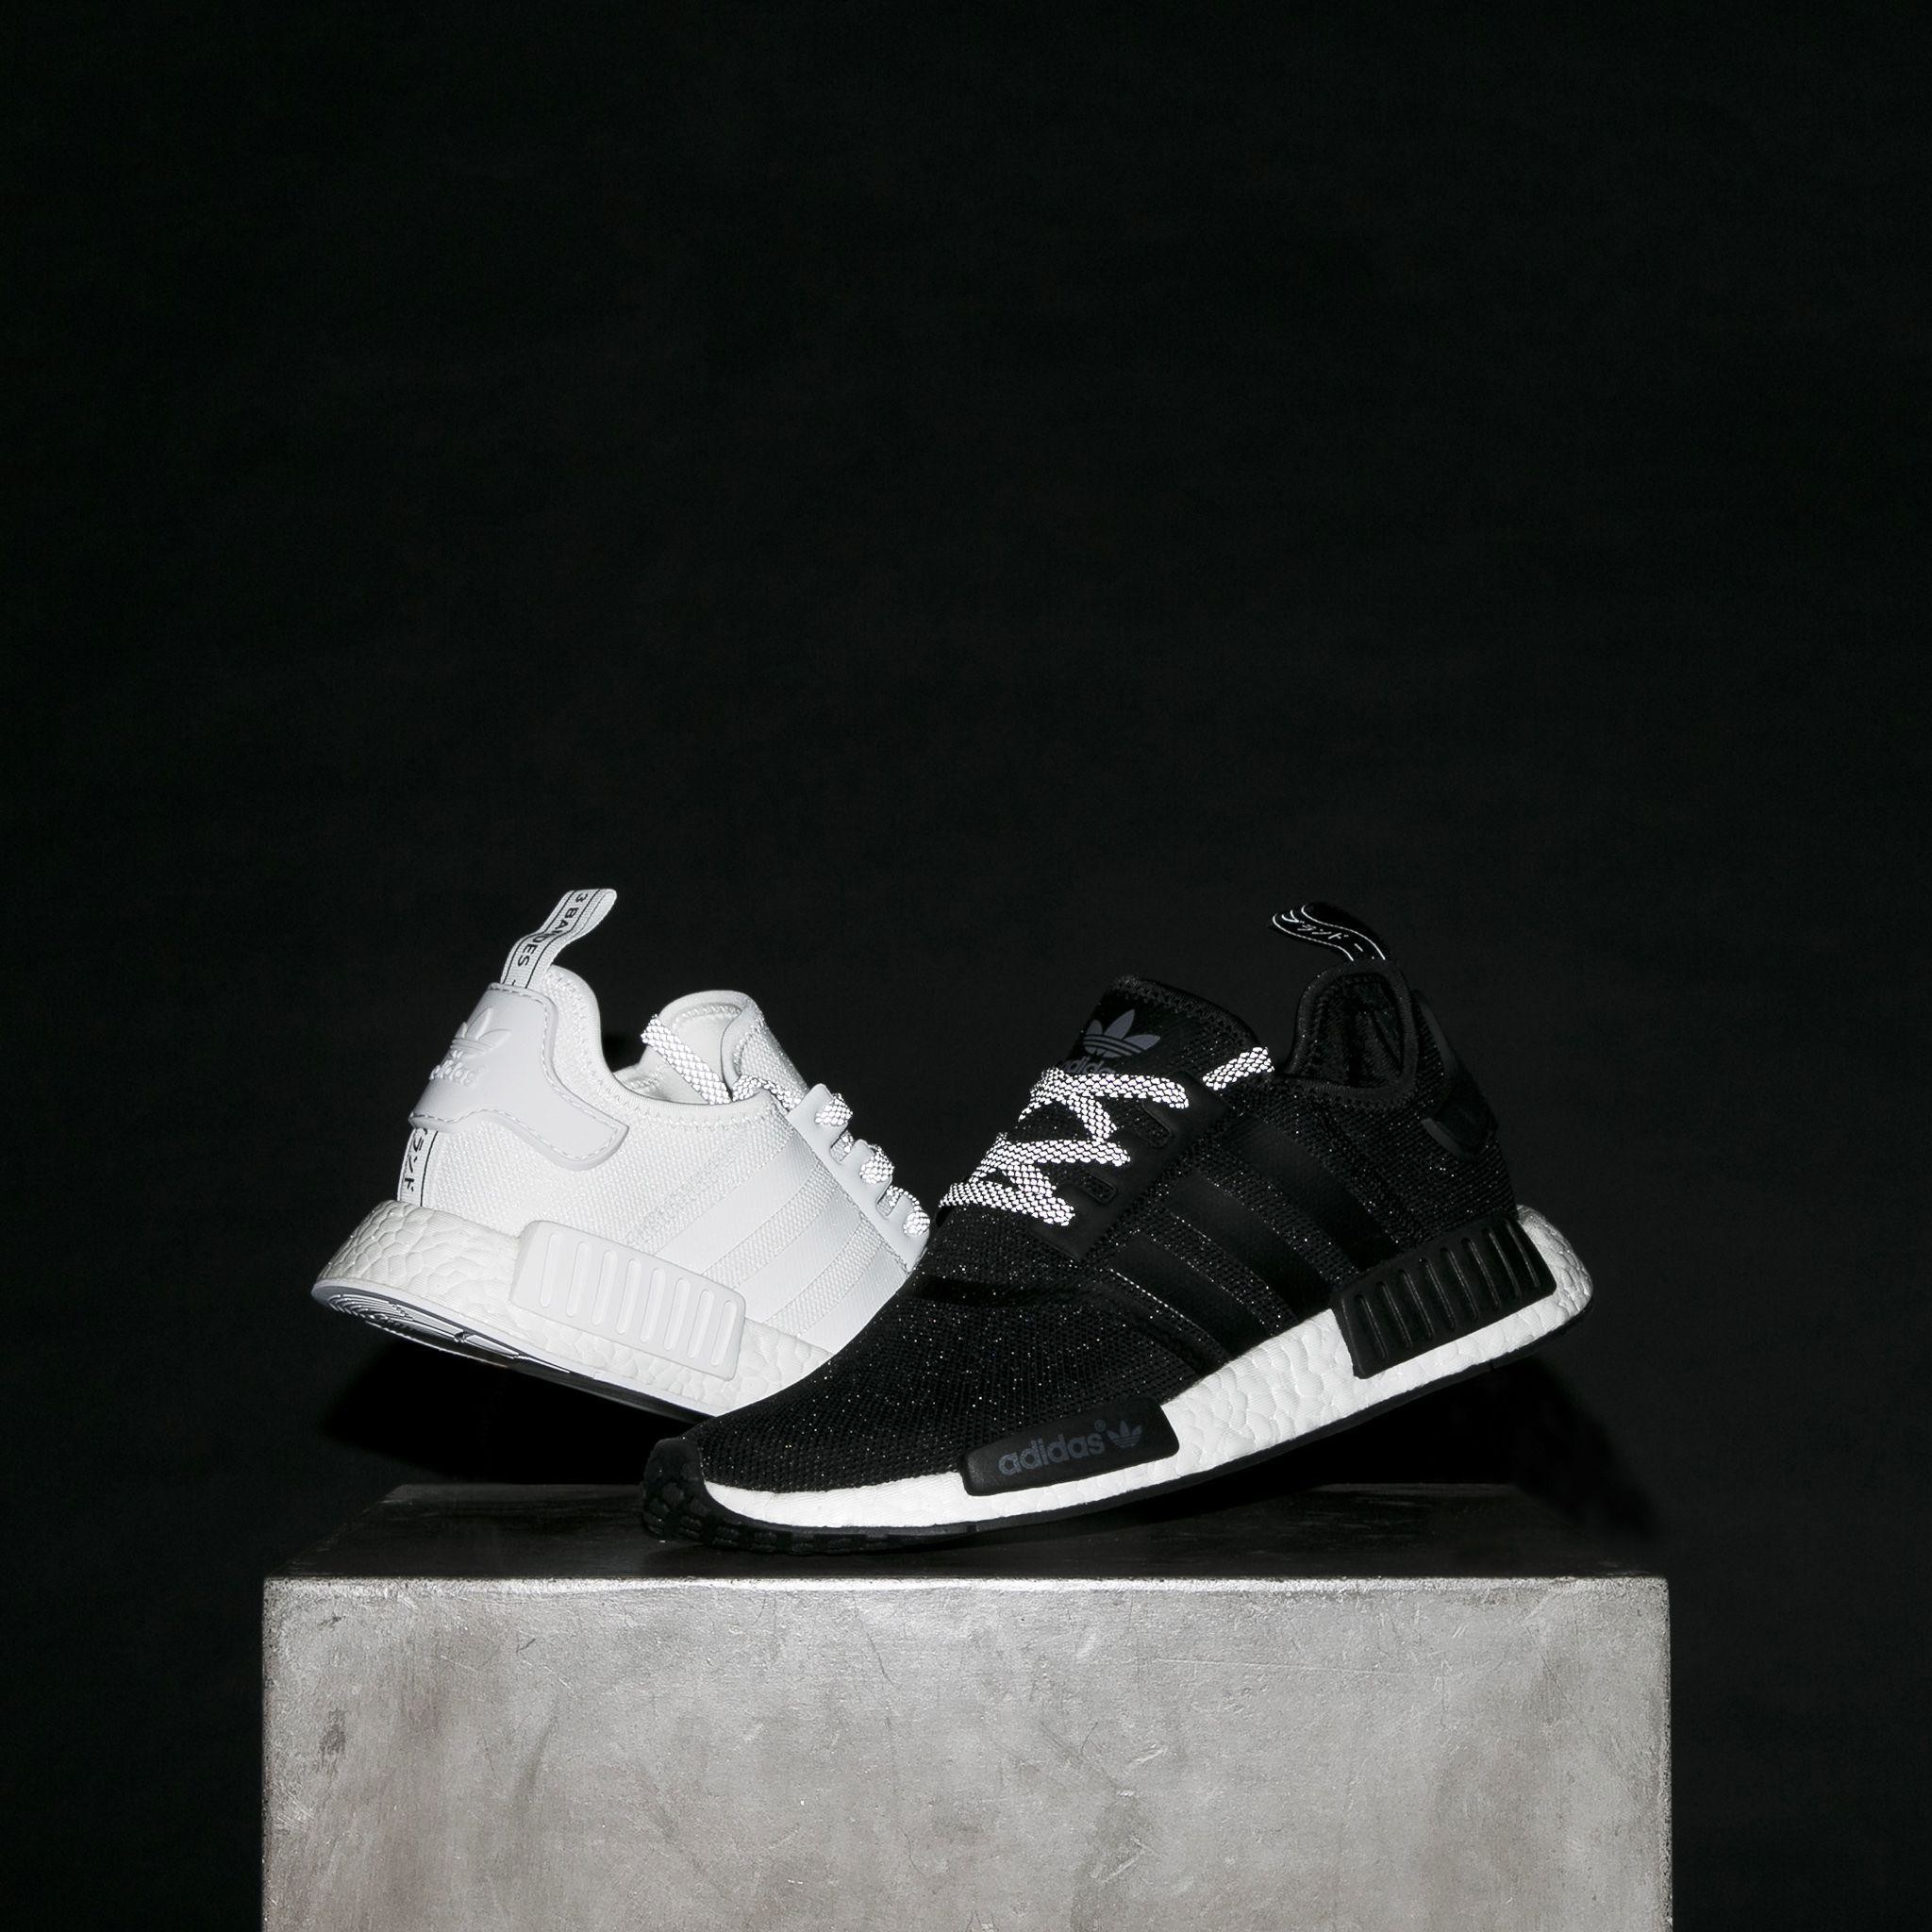 Nmd Wallpapers